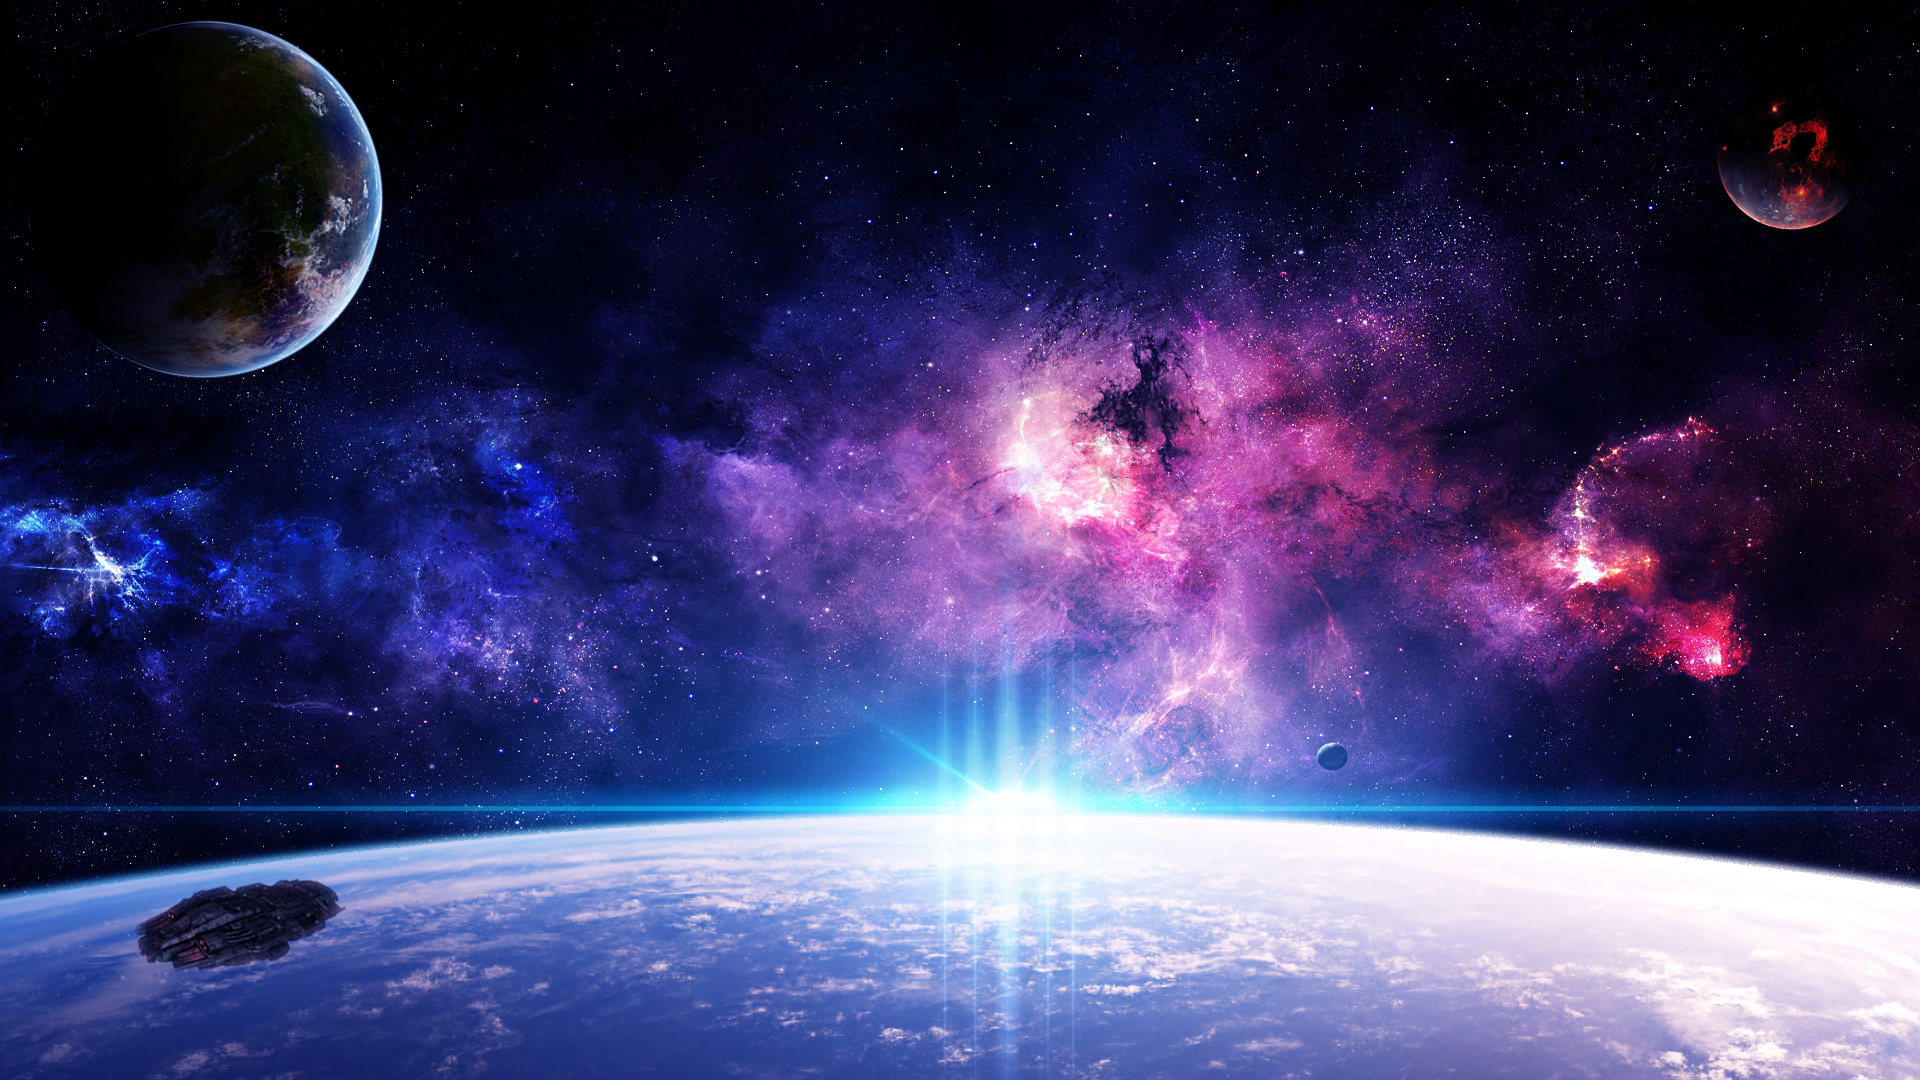 space wallpaper hd astronaut lion country space wallpaper cool hd space png 1920 1080